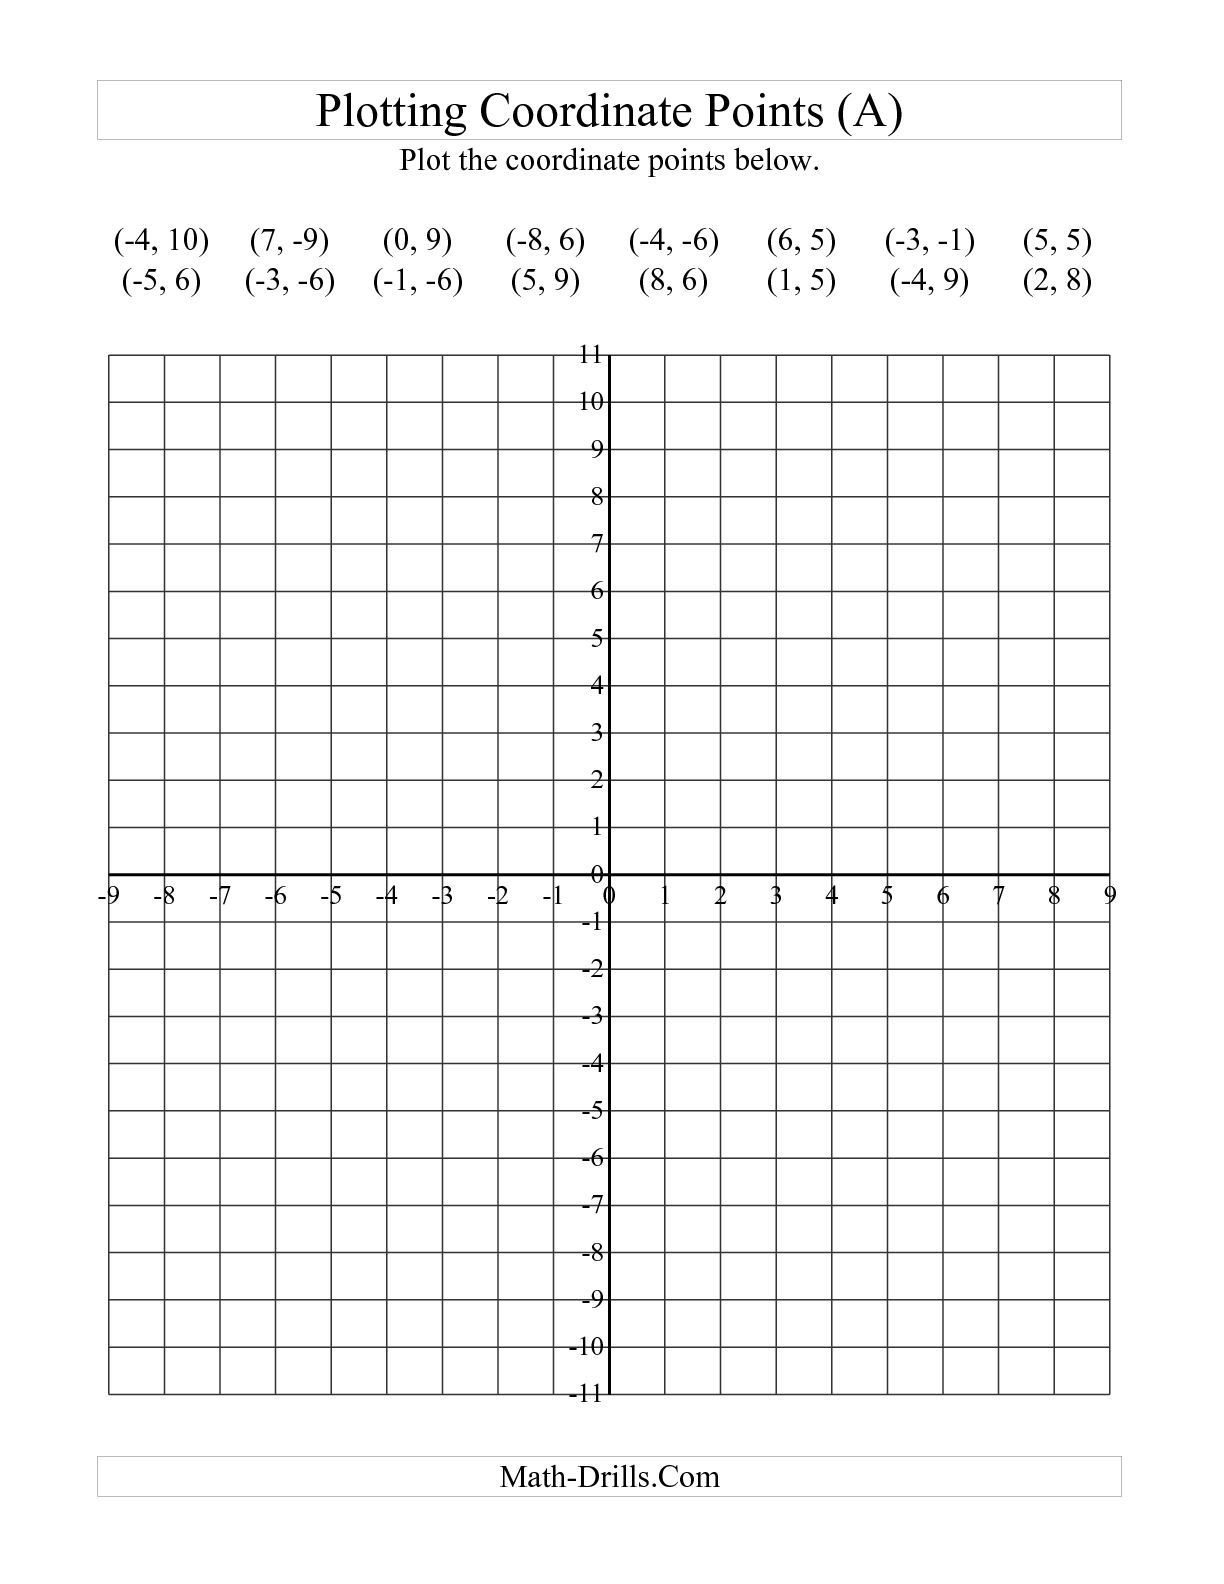 Coordinate Grid Worksheets 6th Grade the Plotting Coordinate Points All Math Worksheet From the